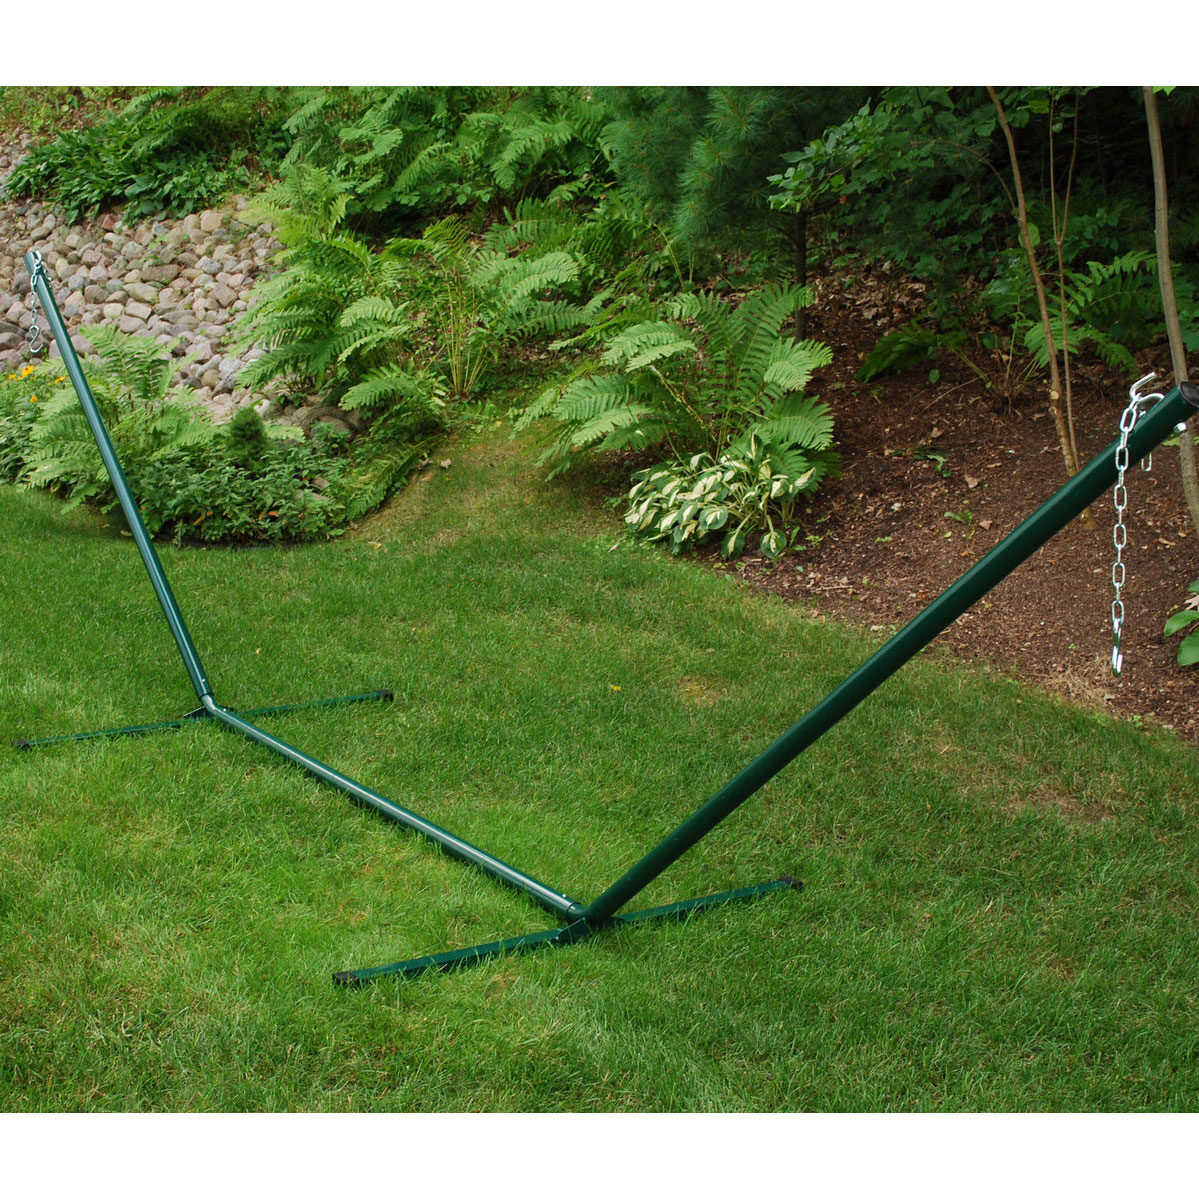 Medium image of algoma hammock stand